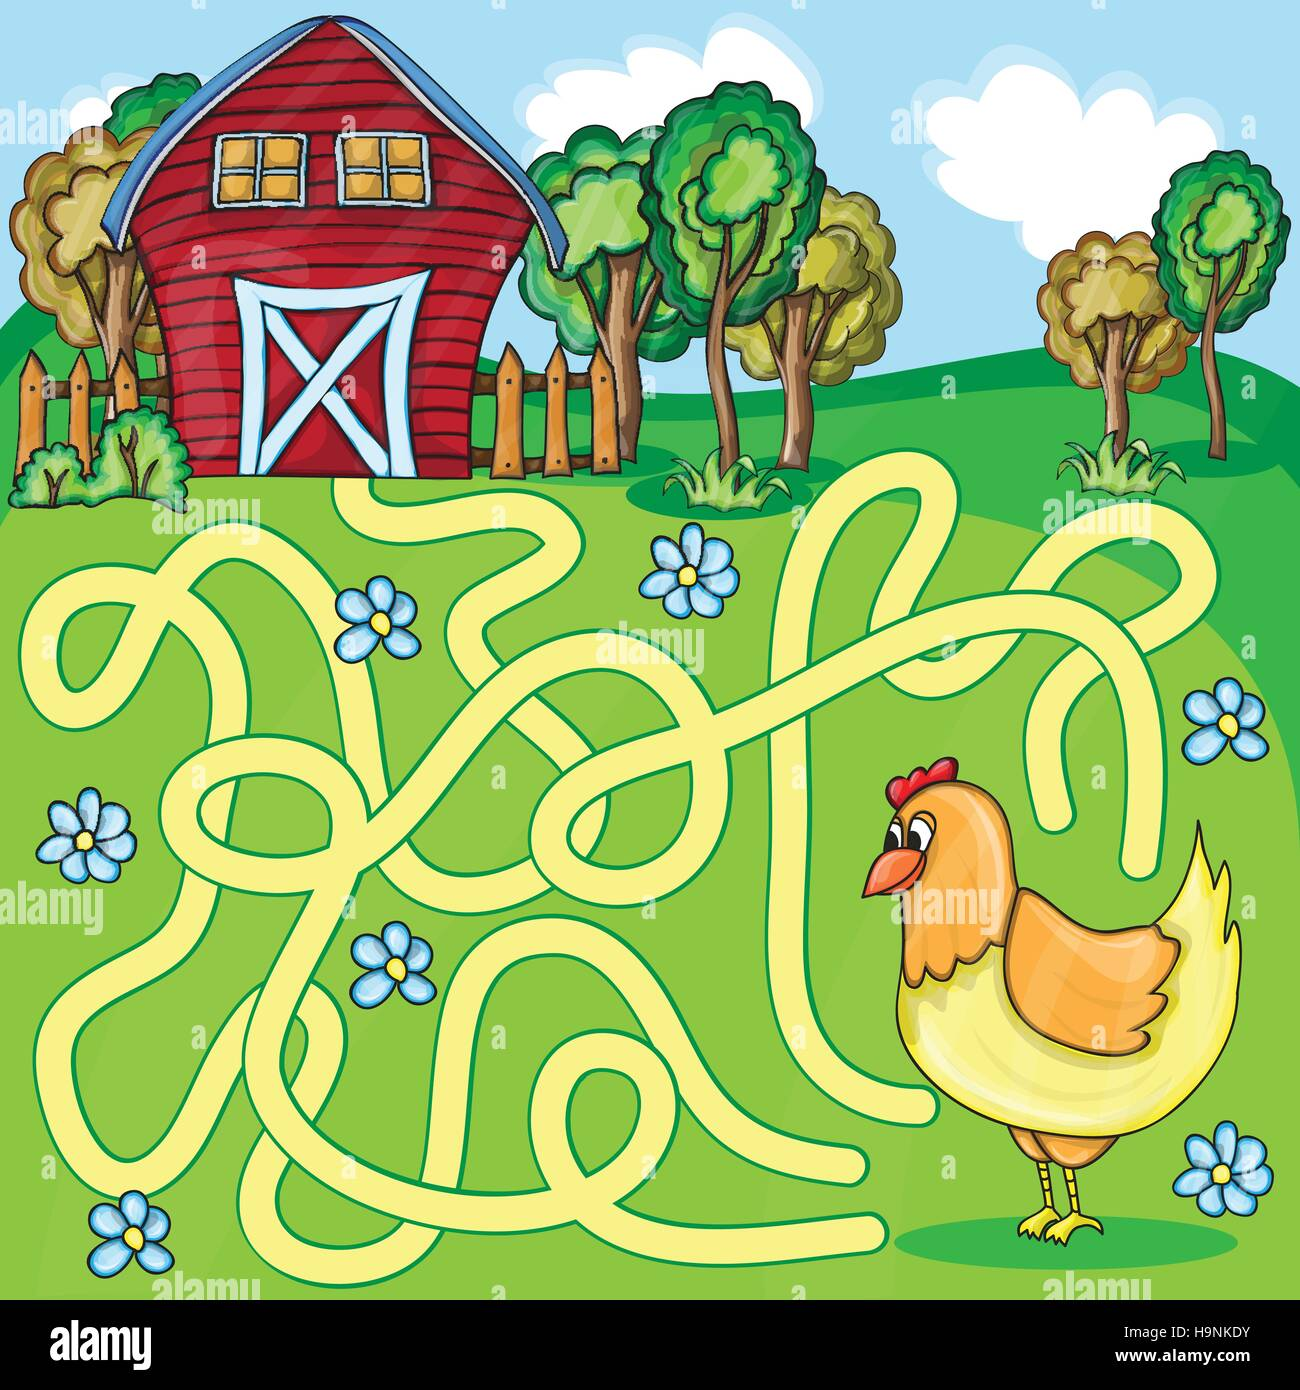 Funny Maze Game -  Cartoon Chicken Farm Style - vector Illustration - Stock Vector